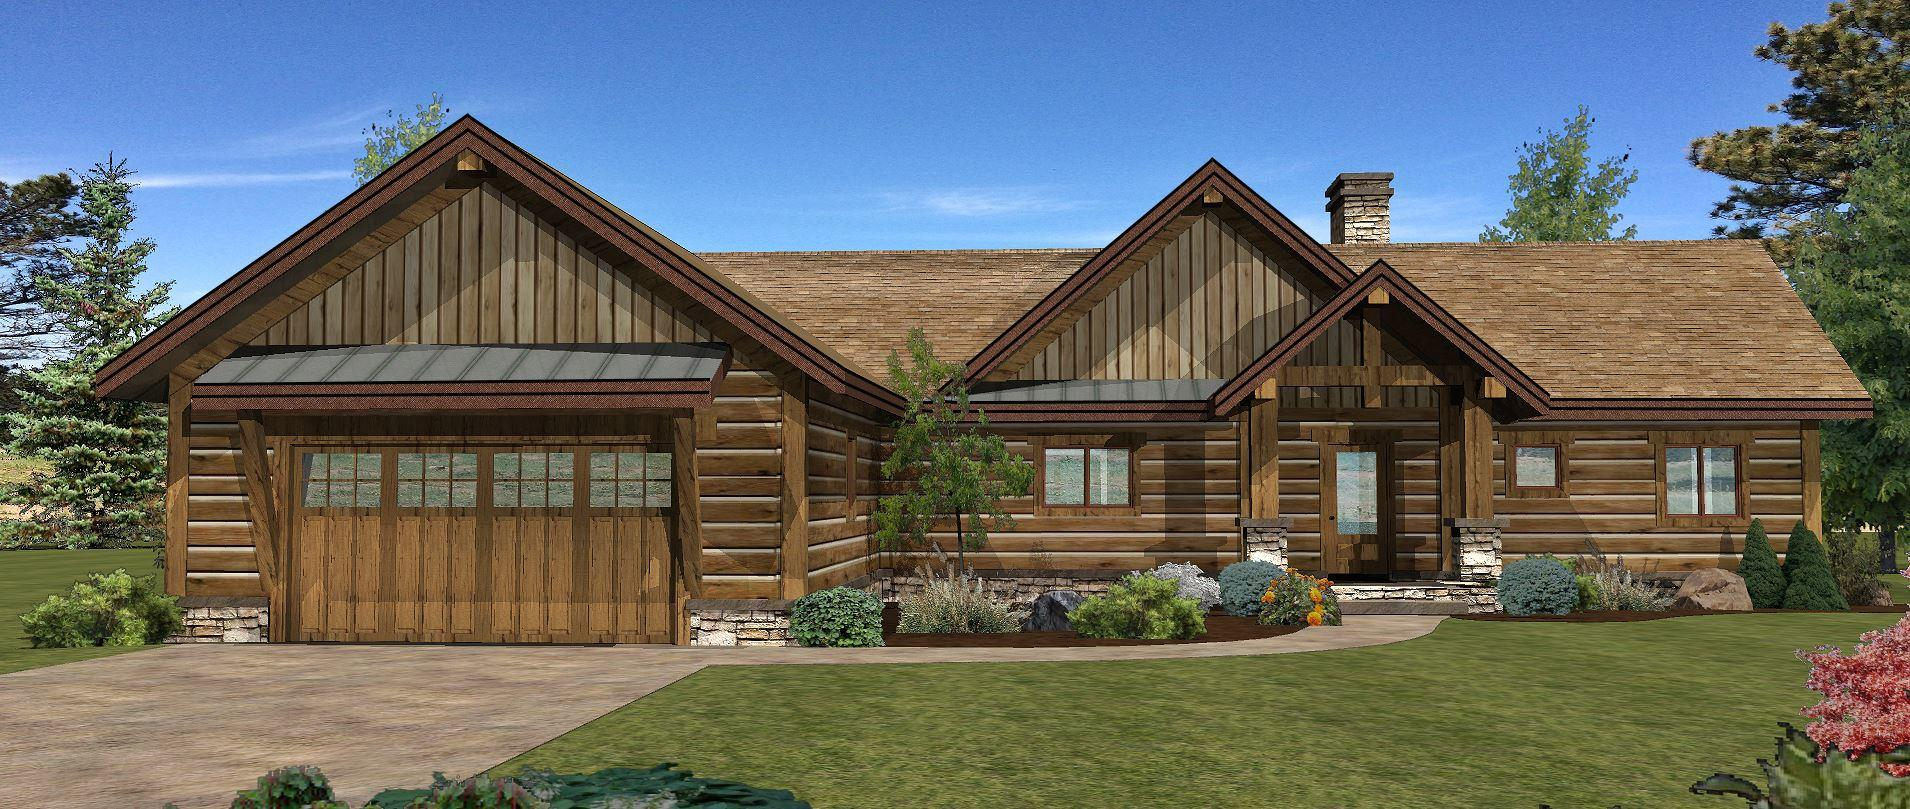 Foxpoint - Front Rendering by Wisconsin Log Homes 2